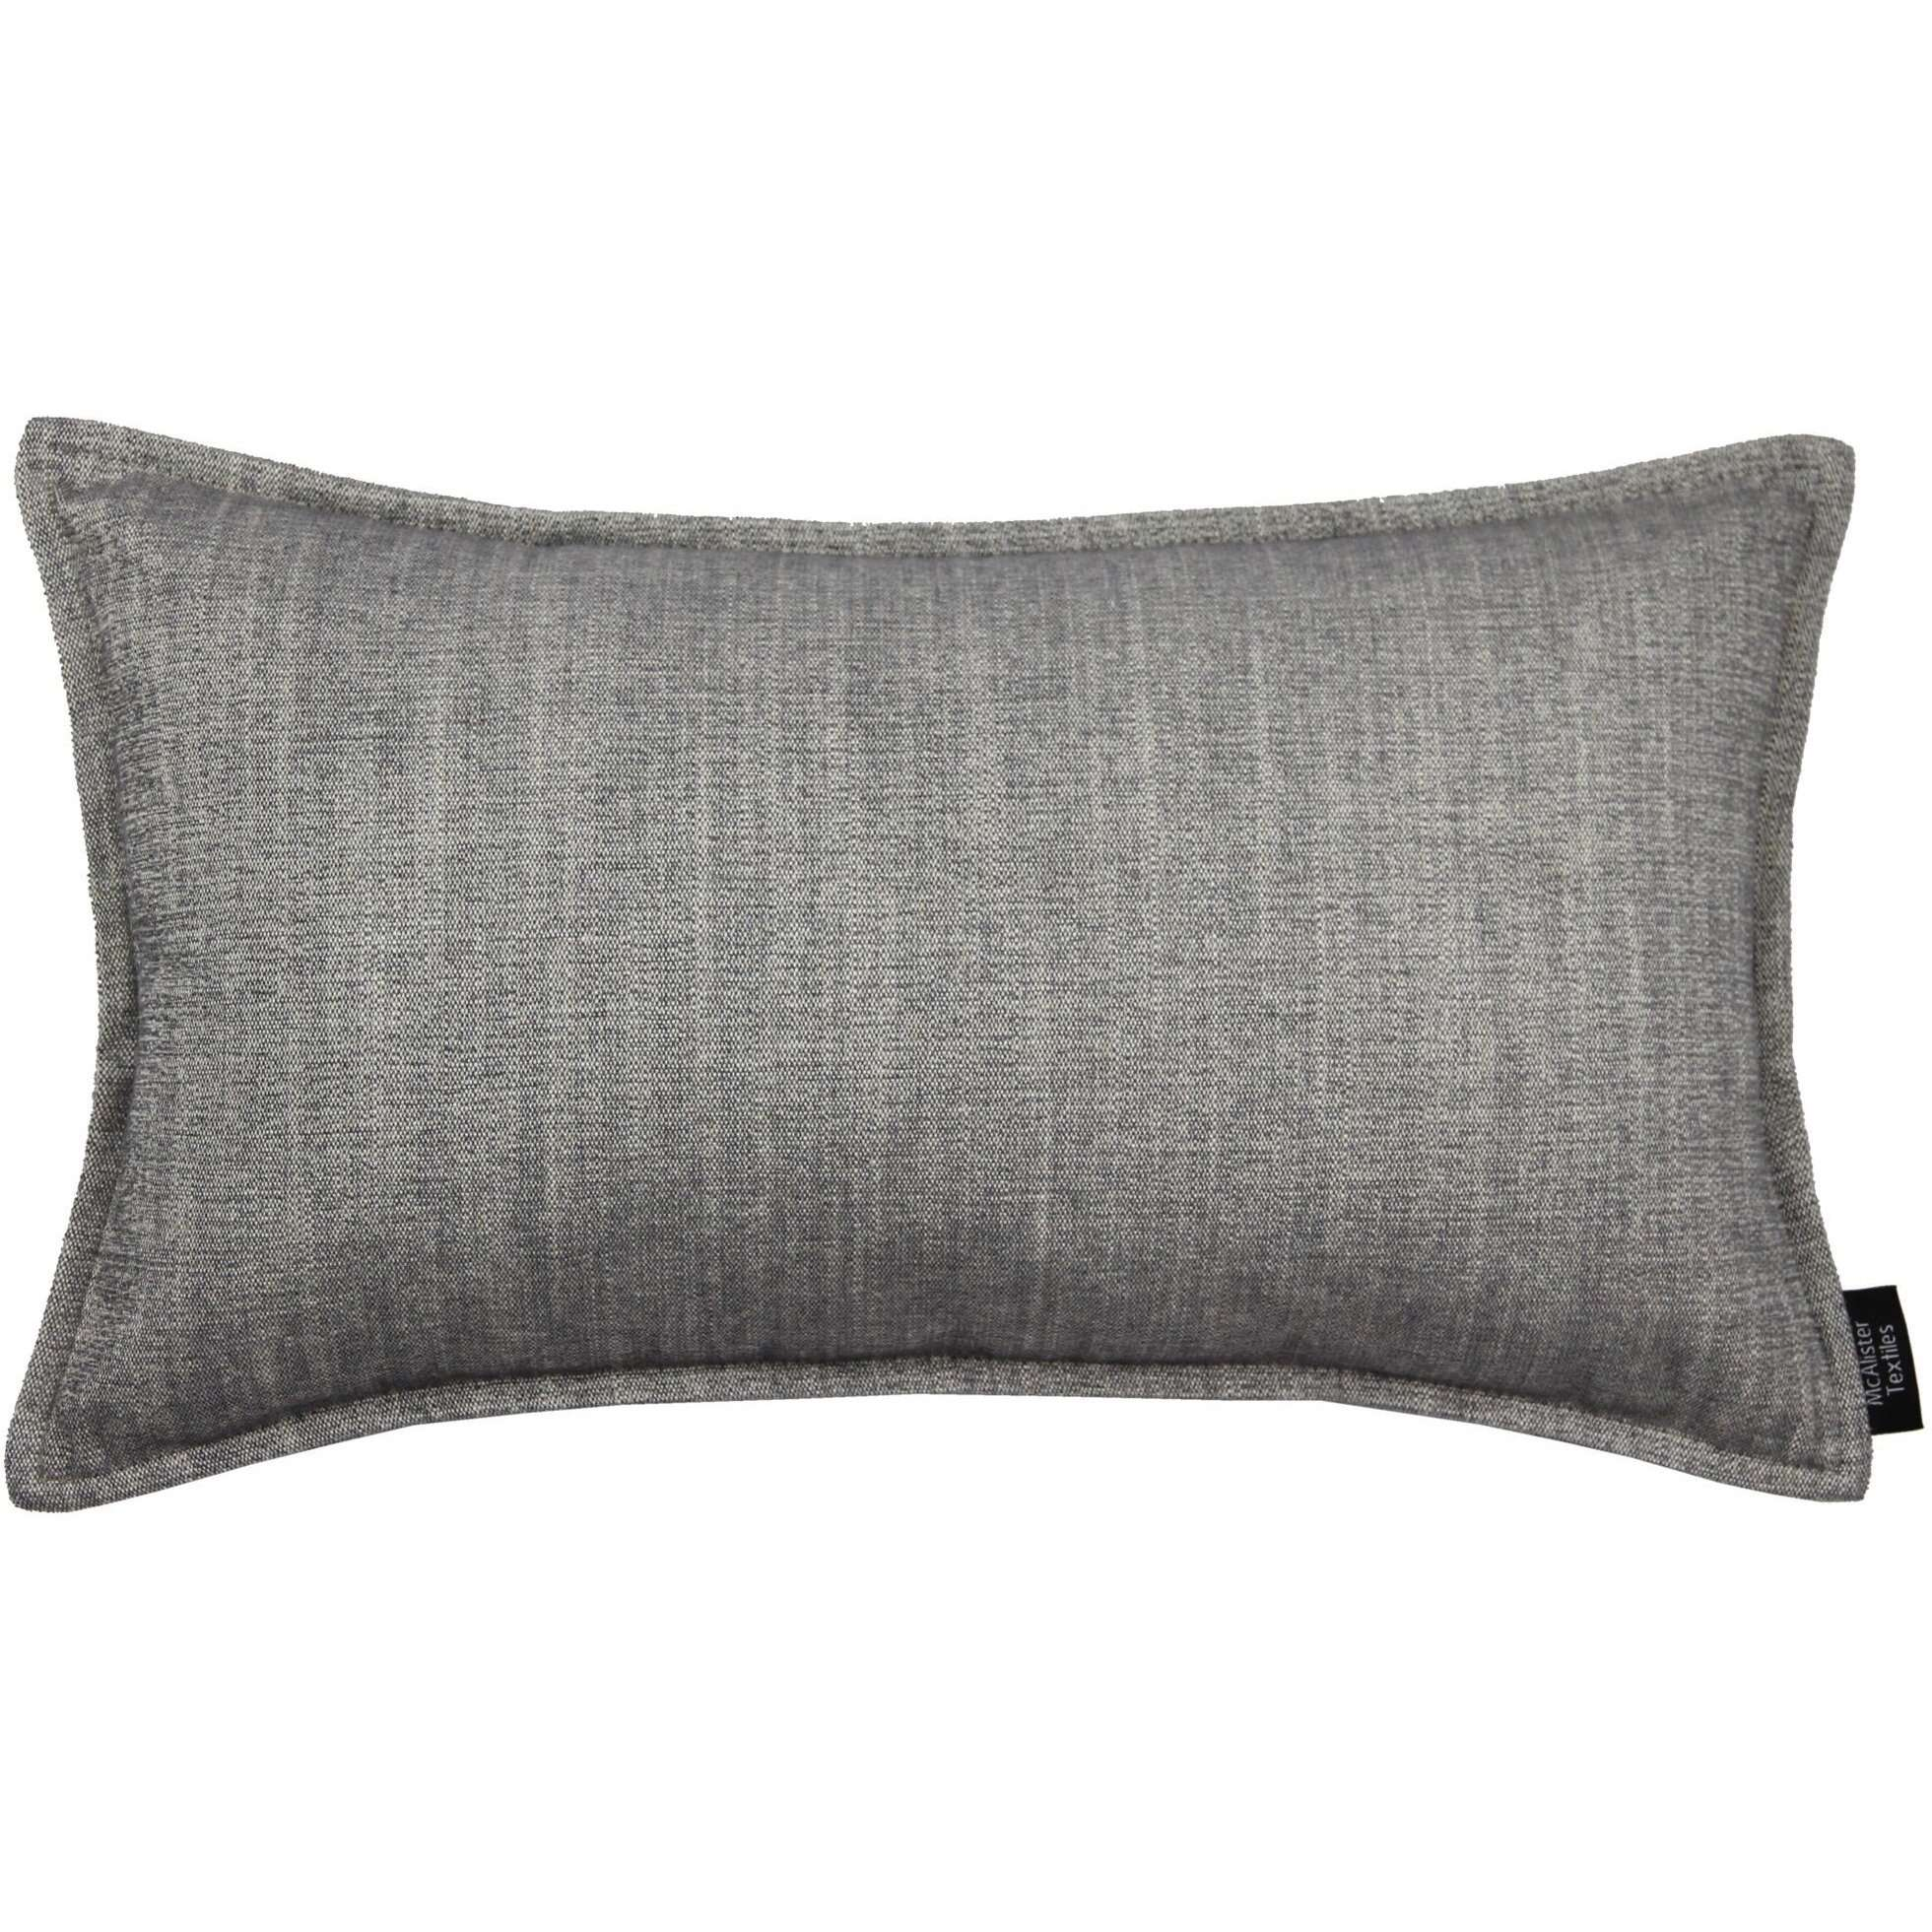 McAlister Textiles Rhumba Charcoal Grey Cushion Cushions and Covers Cover Only 50cm x 30cm